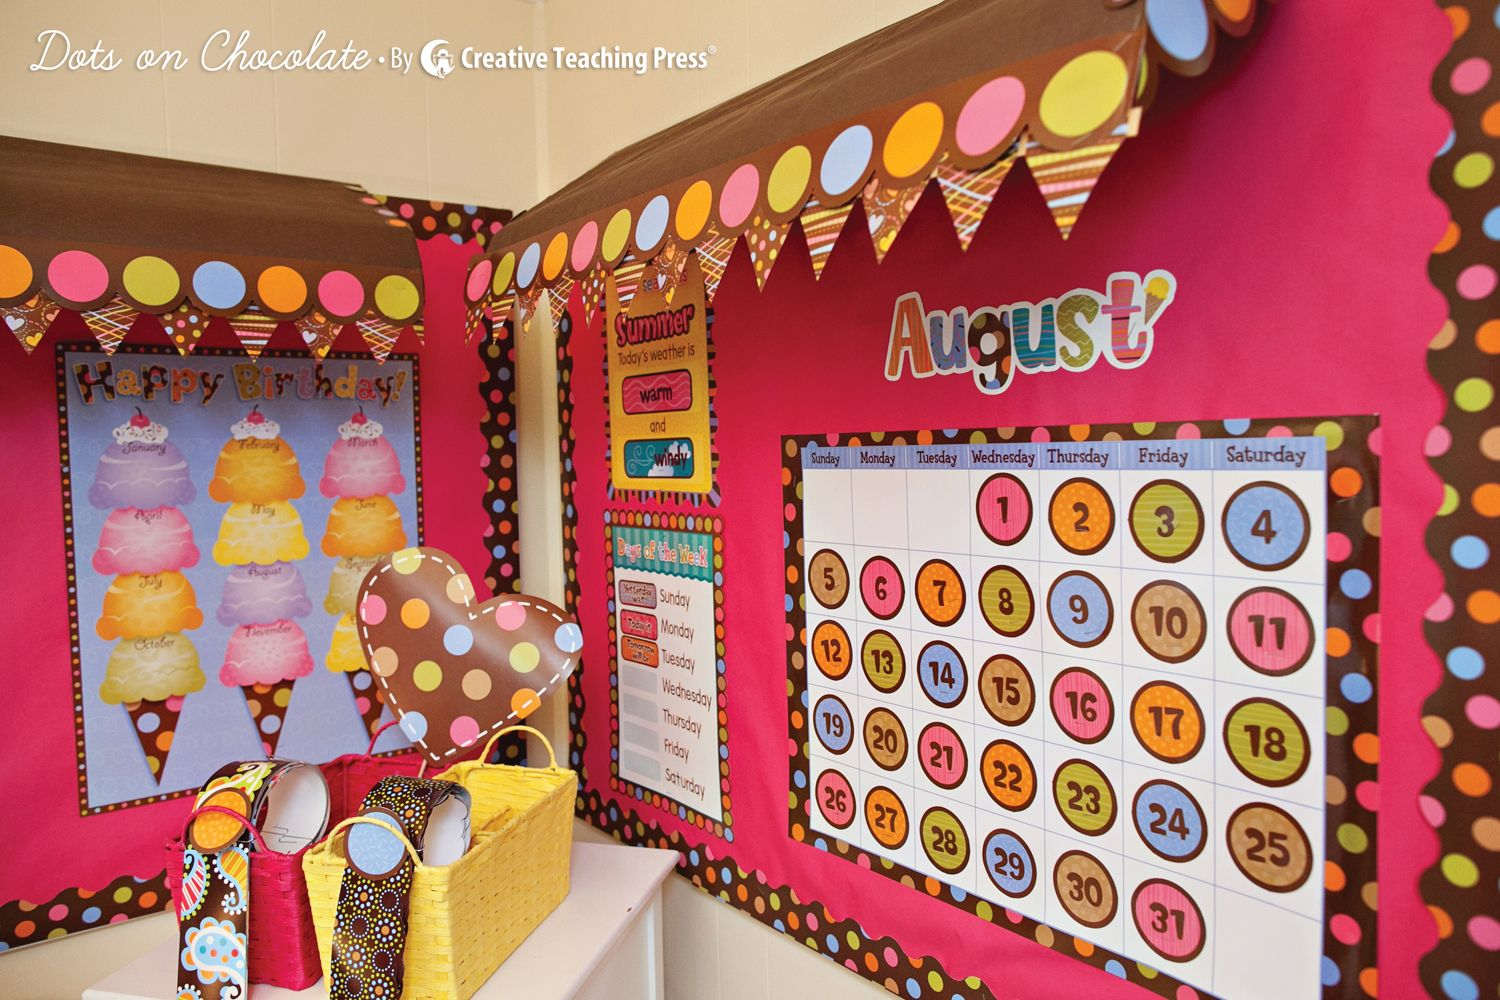 Tip Create Cardboard Awnings Over Your Bulletin Boards To